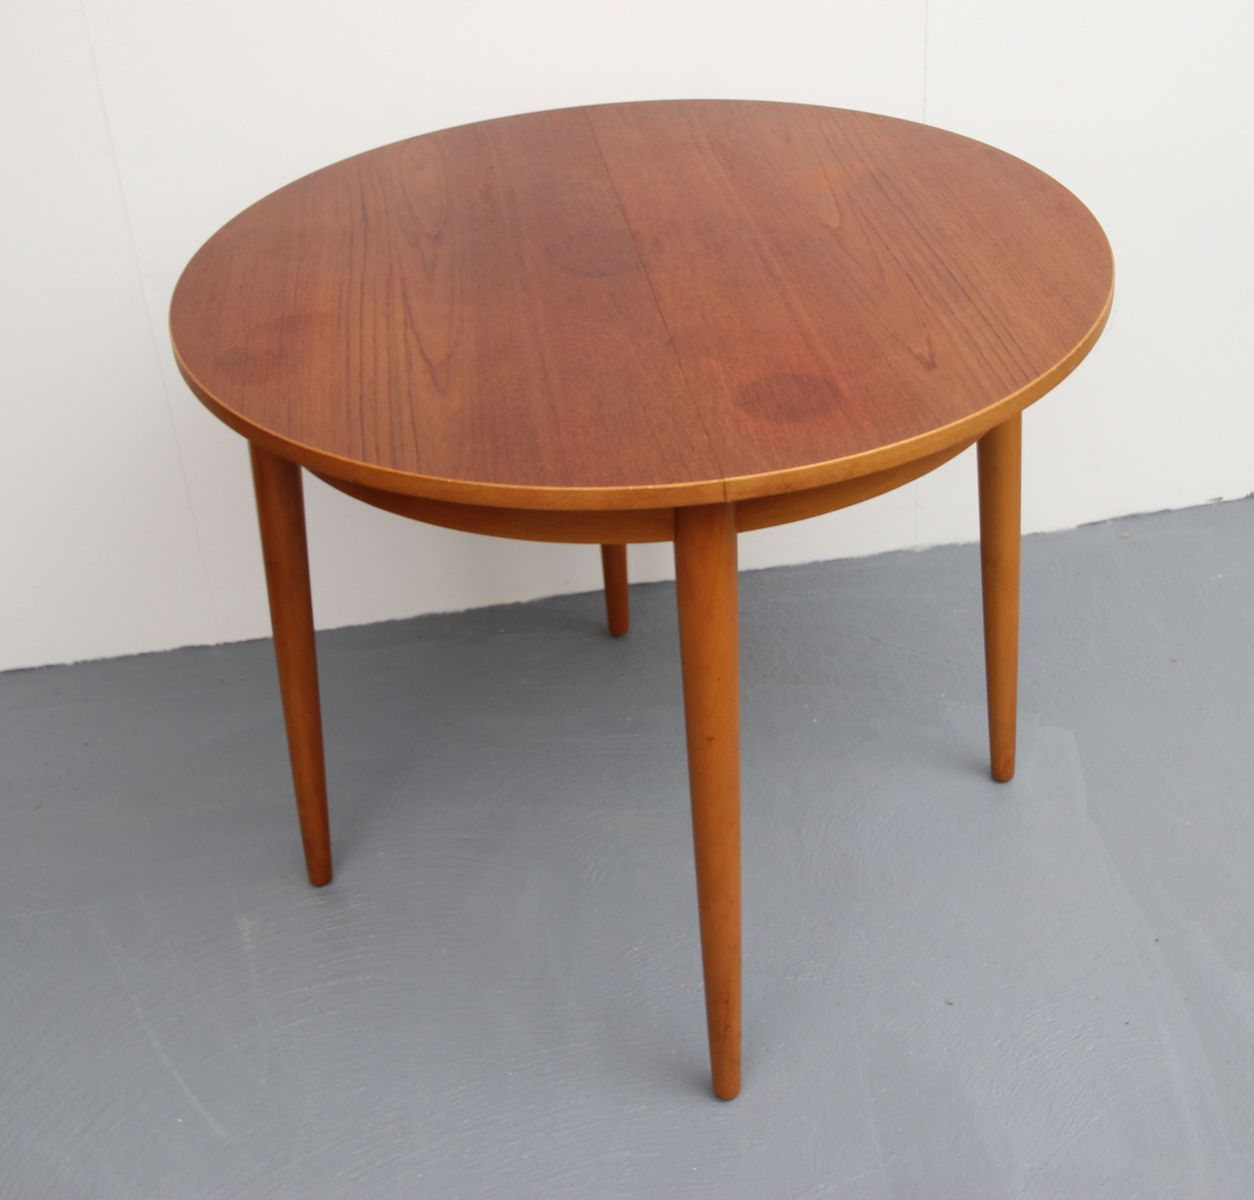 Small vintage dining table from l bke for sale at pamono for Small dining tables for sale